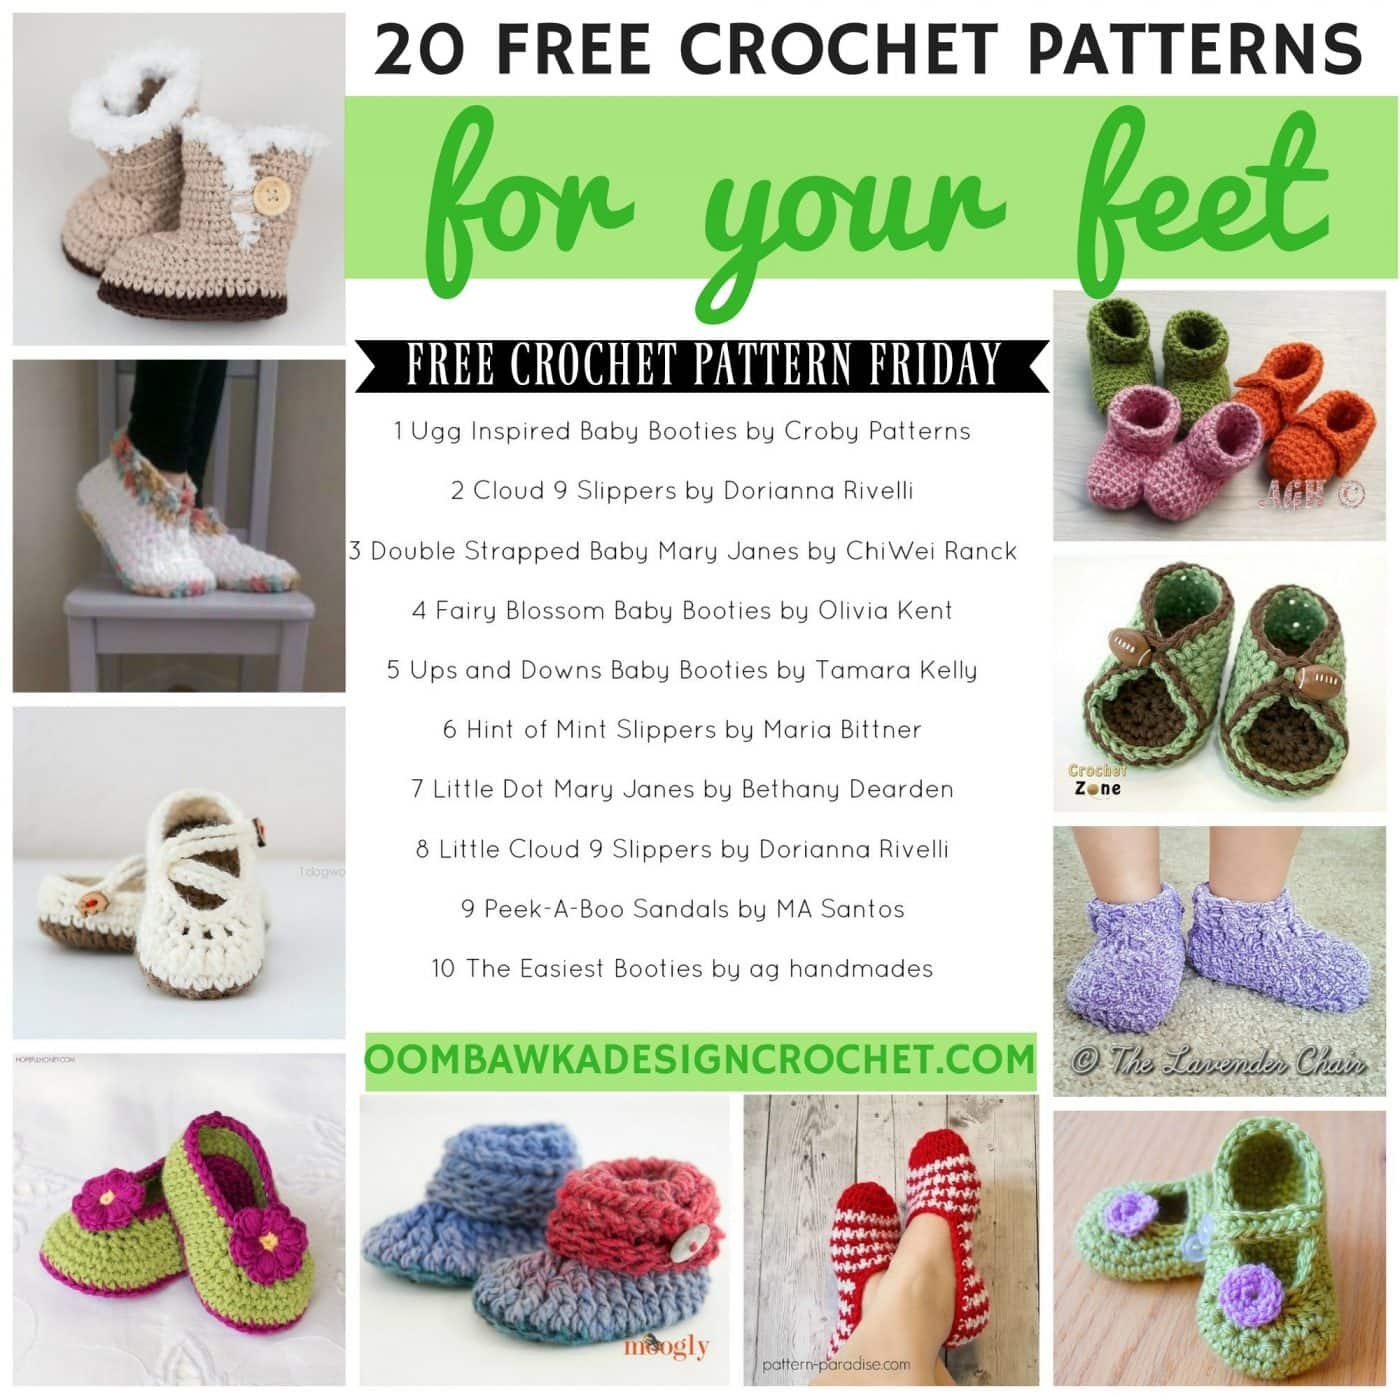 This week on Free Crochet Pattern Friday: 20 FREE Crochet Patterns for Your Feet